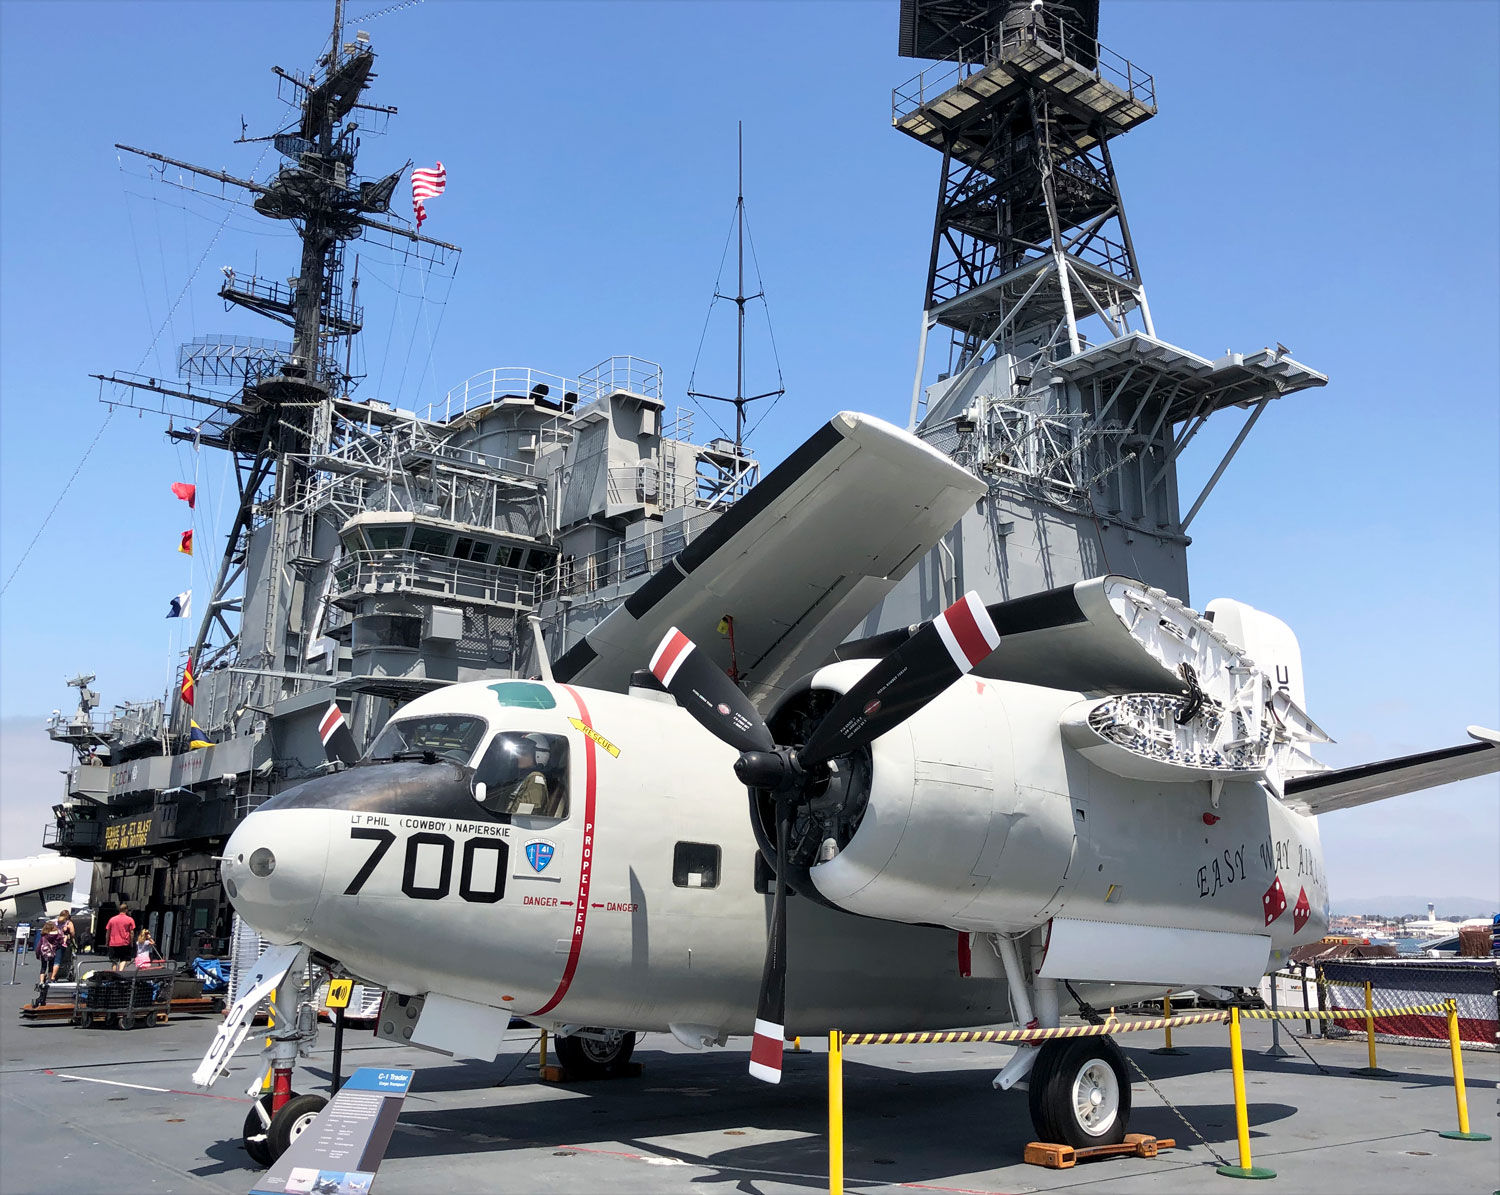 Planes parked on the deck of the USS Midway Museum in San Diego.